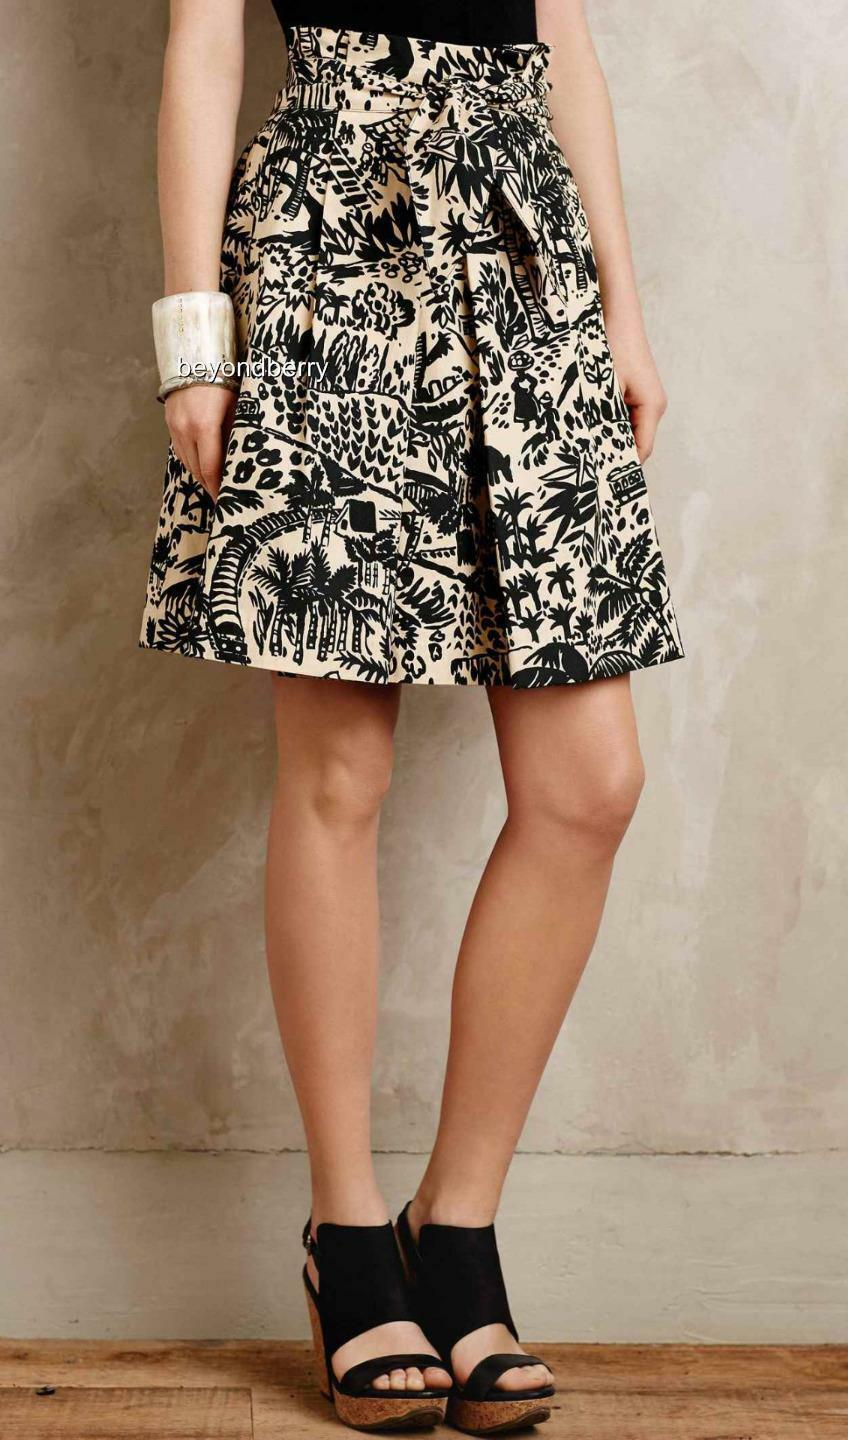 NEW Anthropologie Palm Garden Skirt by Corey Lynn Calter  Size 4-6-8